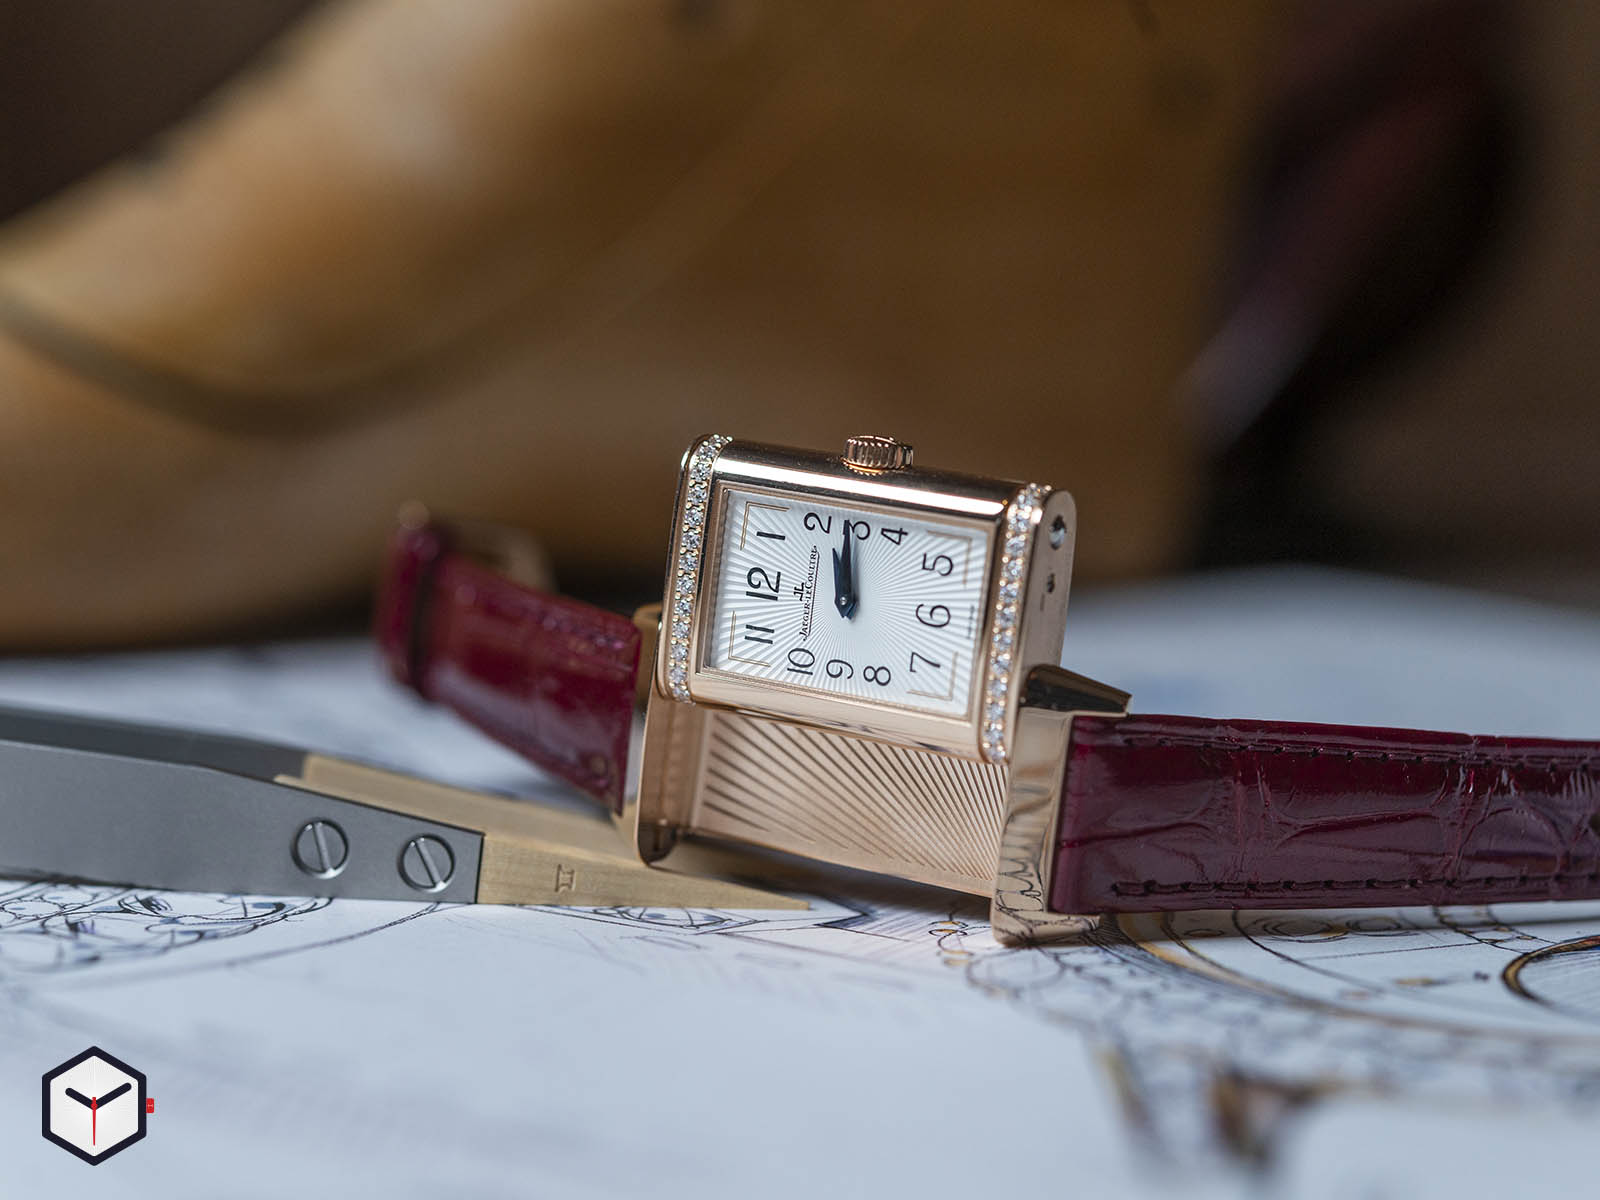 3342520-jaeger-lecoultre-reverso-one-duetto-sihh-2019-2.jpg